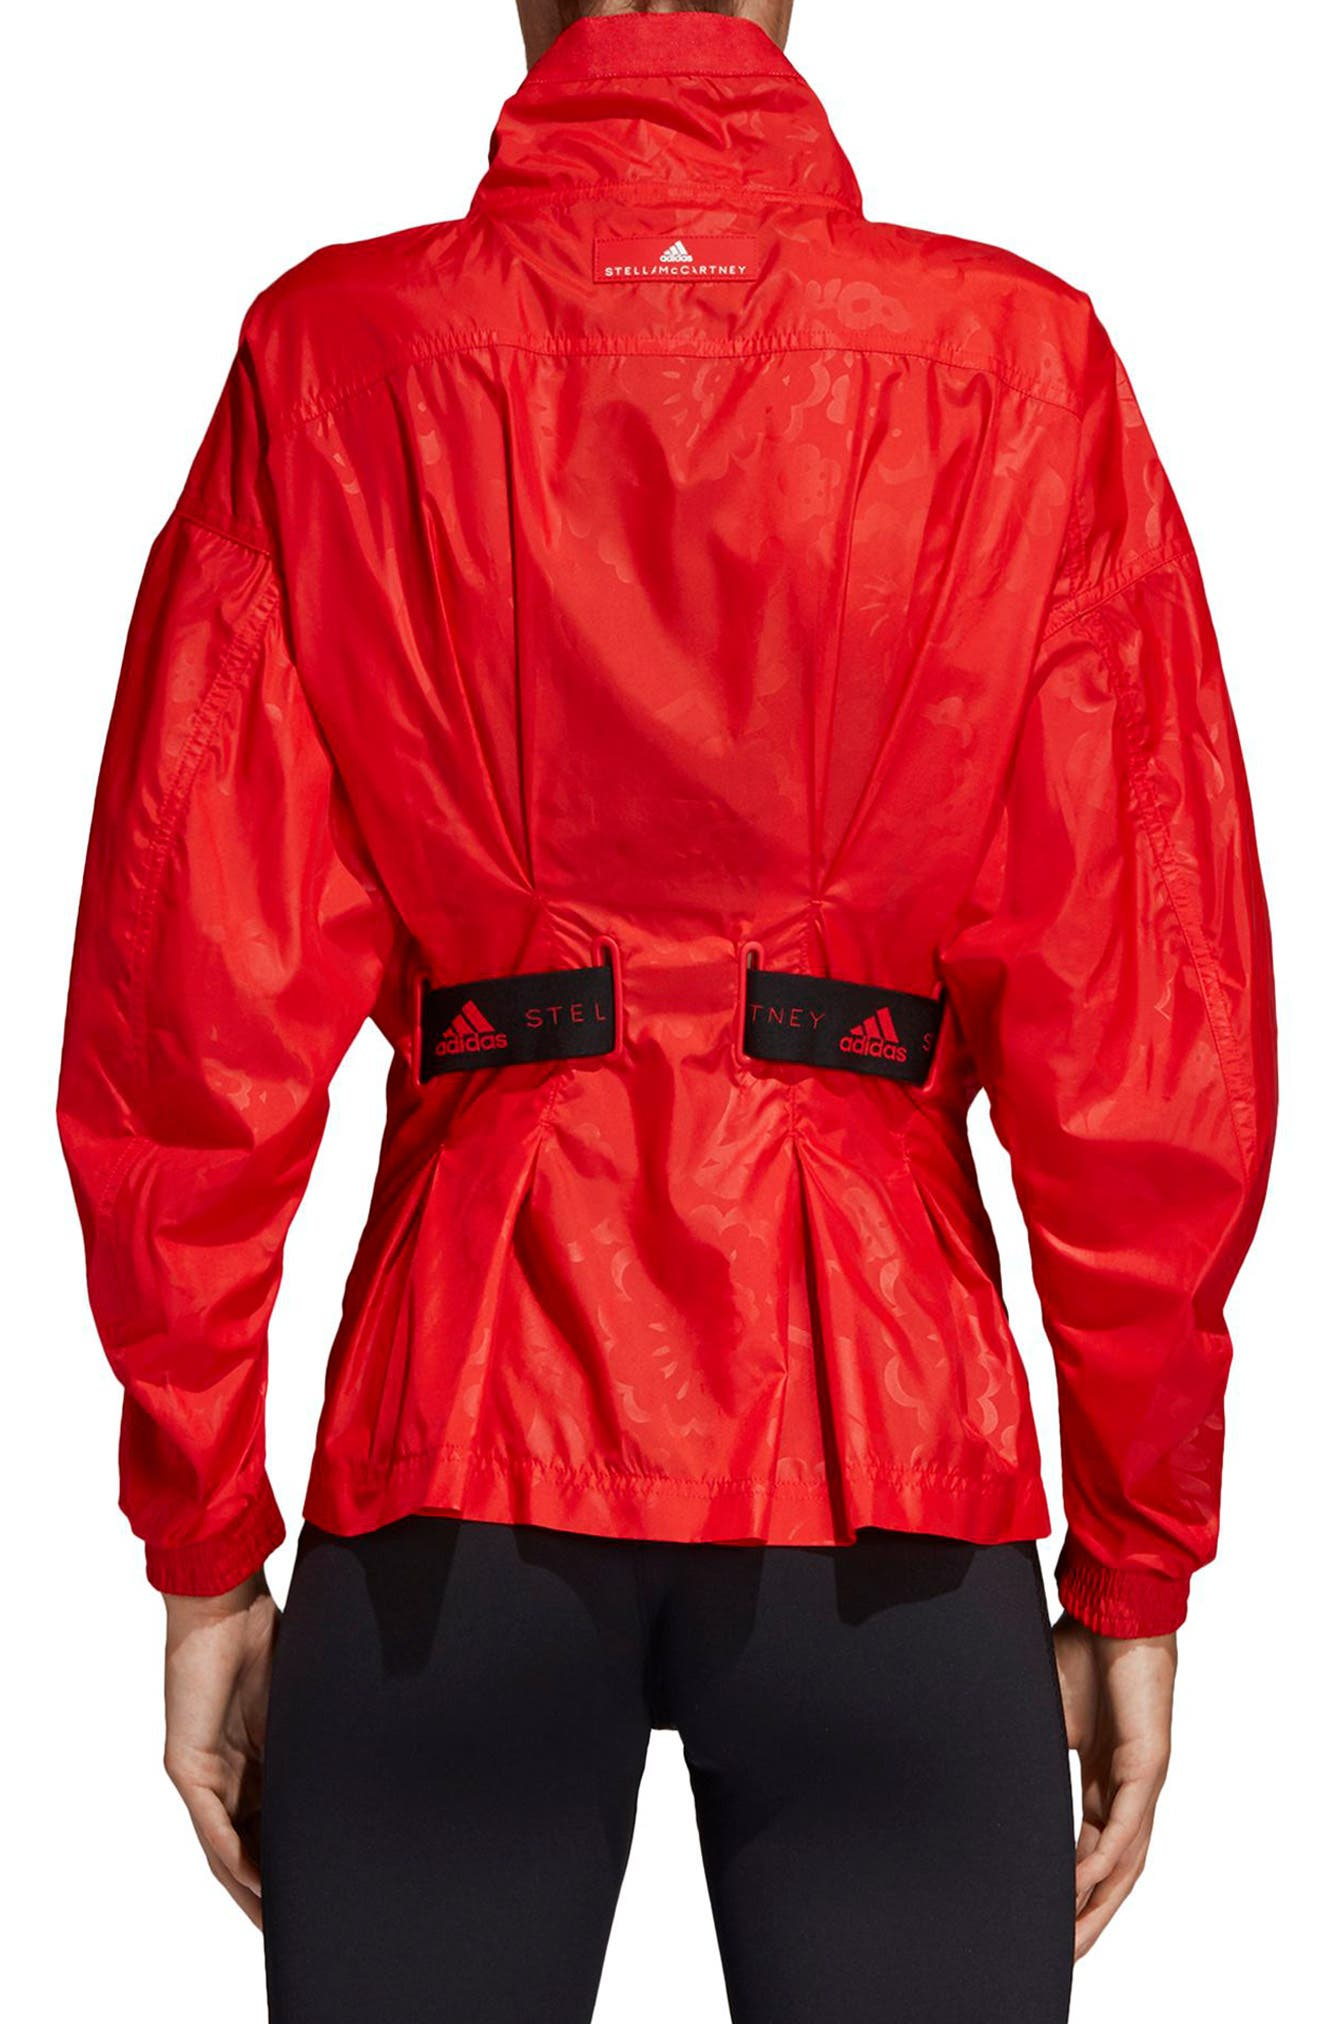 Run Wind Jacket,                             Alternate thumbnail 2, color,                             CORRED